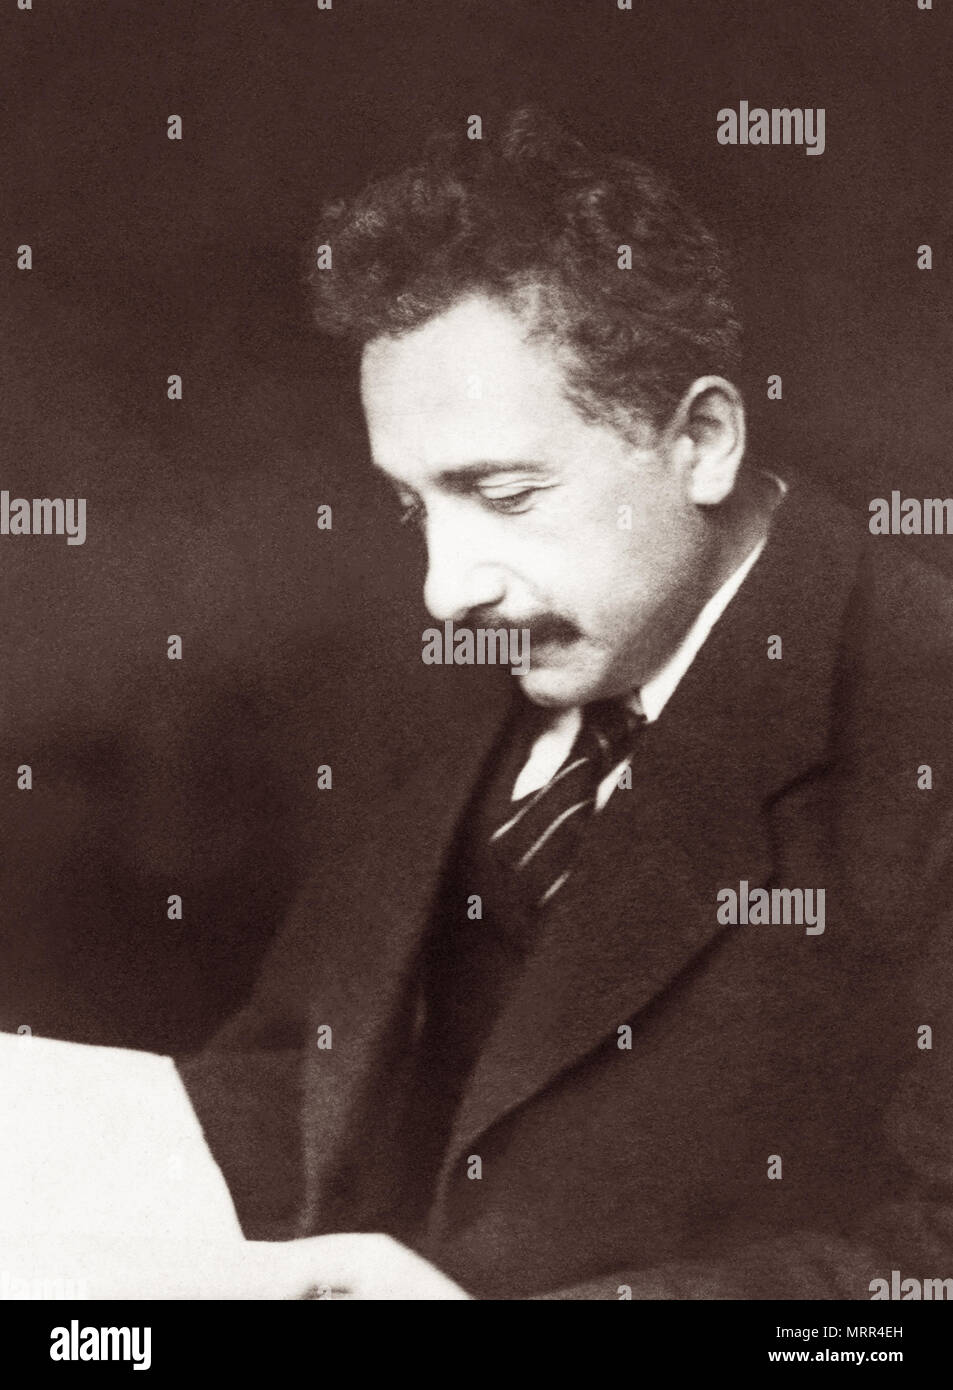 Albert Einstein (1879-1955) was a theoretical physicist who won the 1921 Nobel Prize for Physics and developed the theory of relativity. - Stock Image